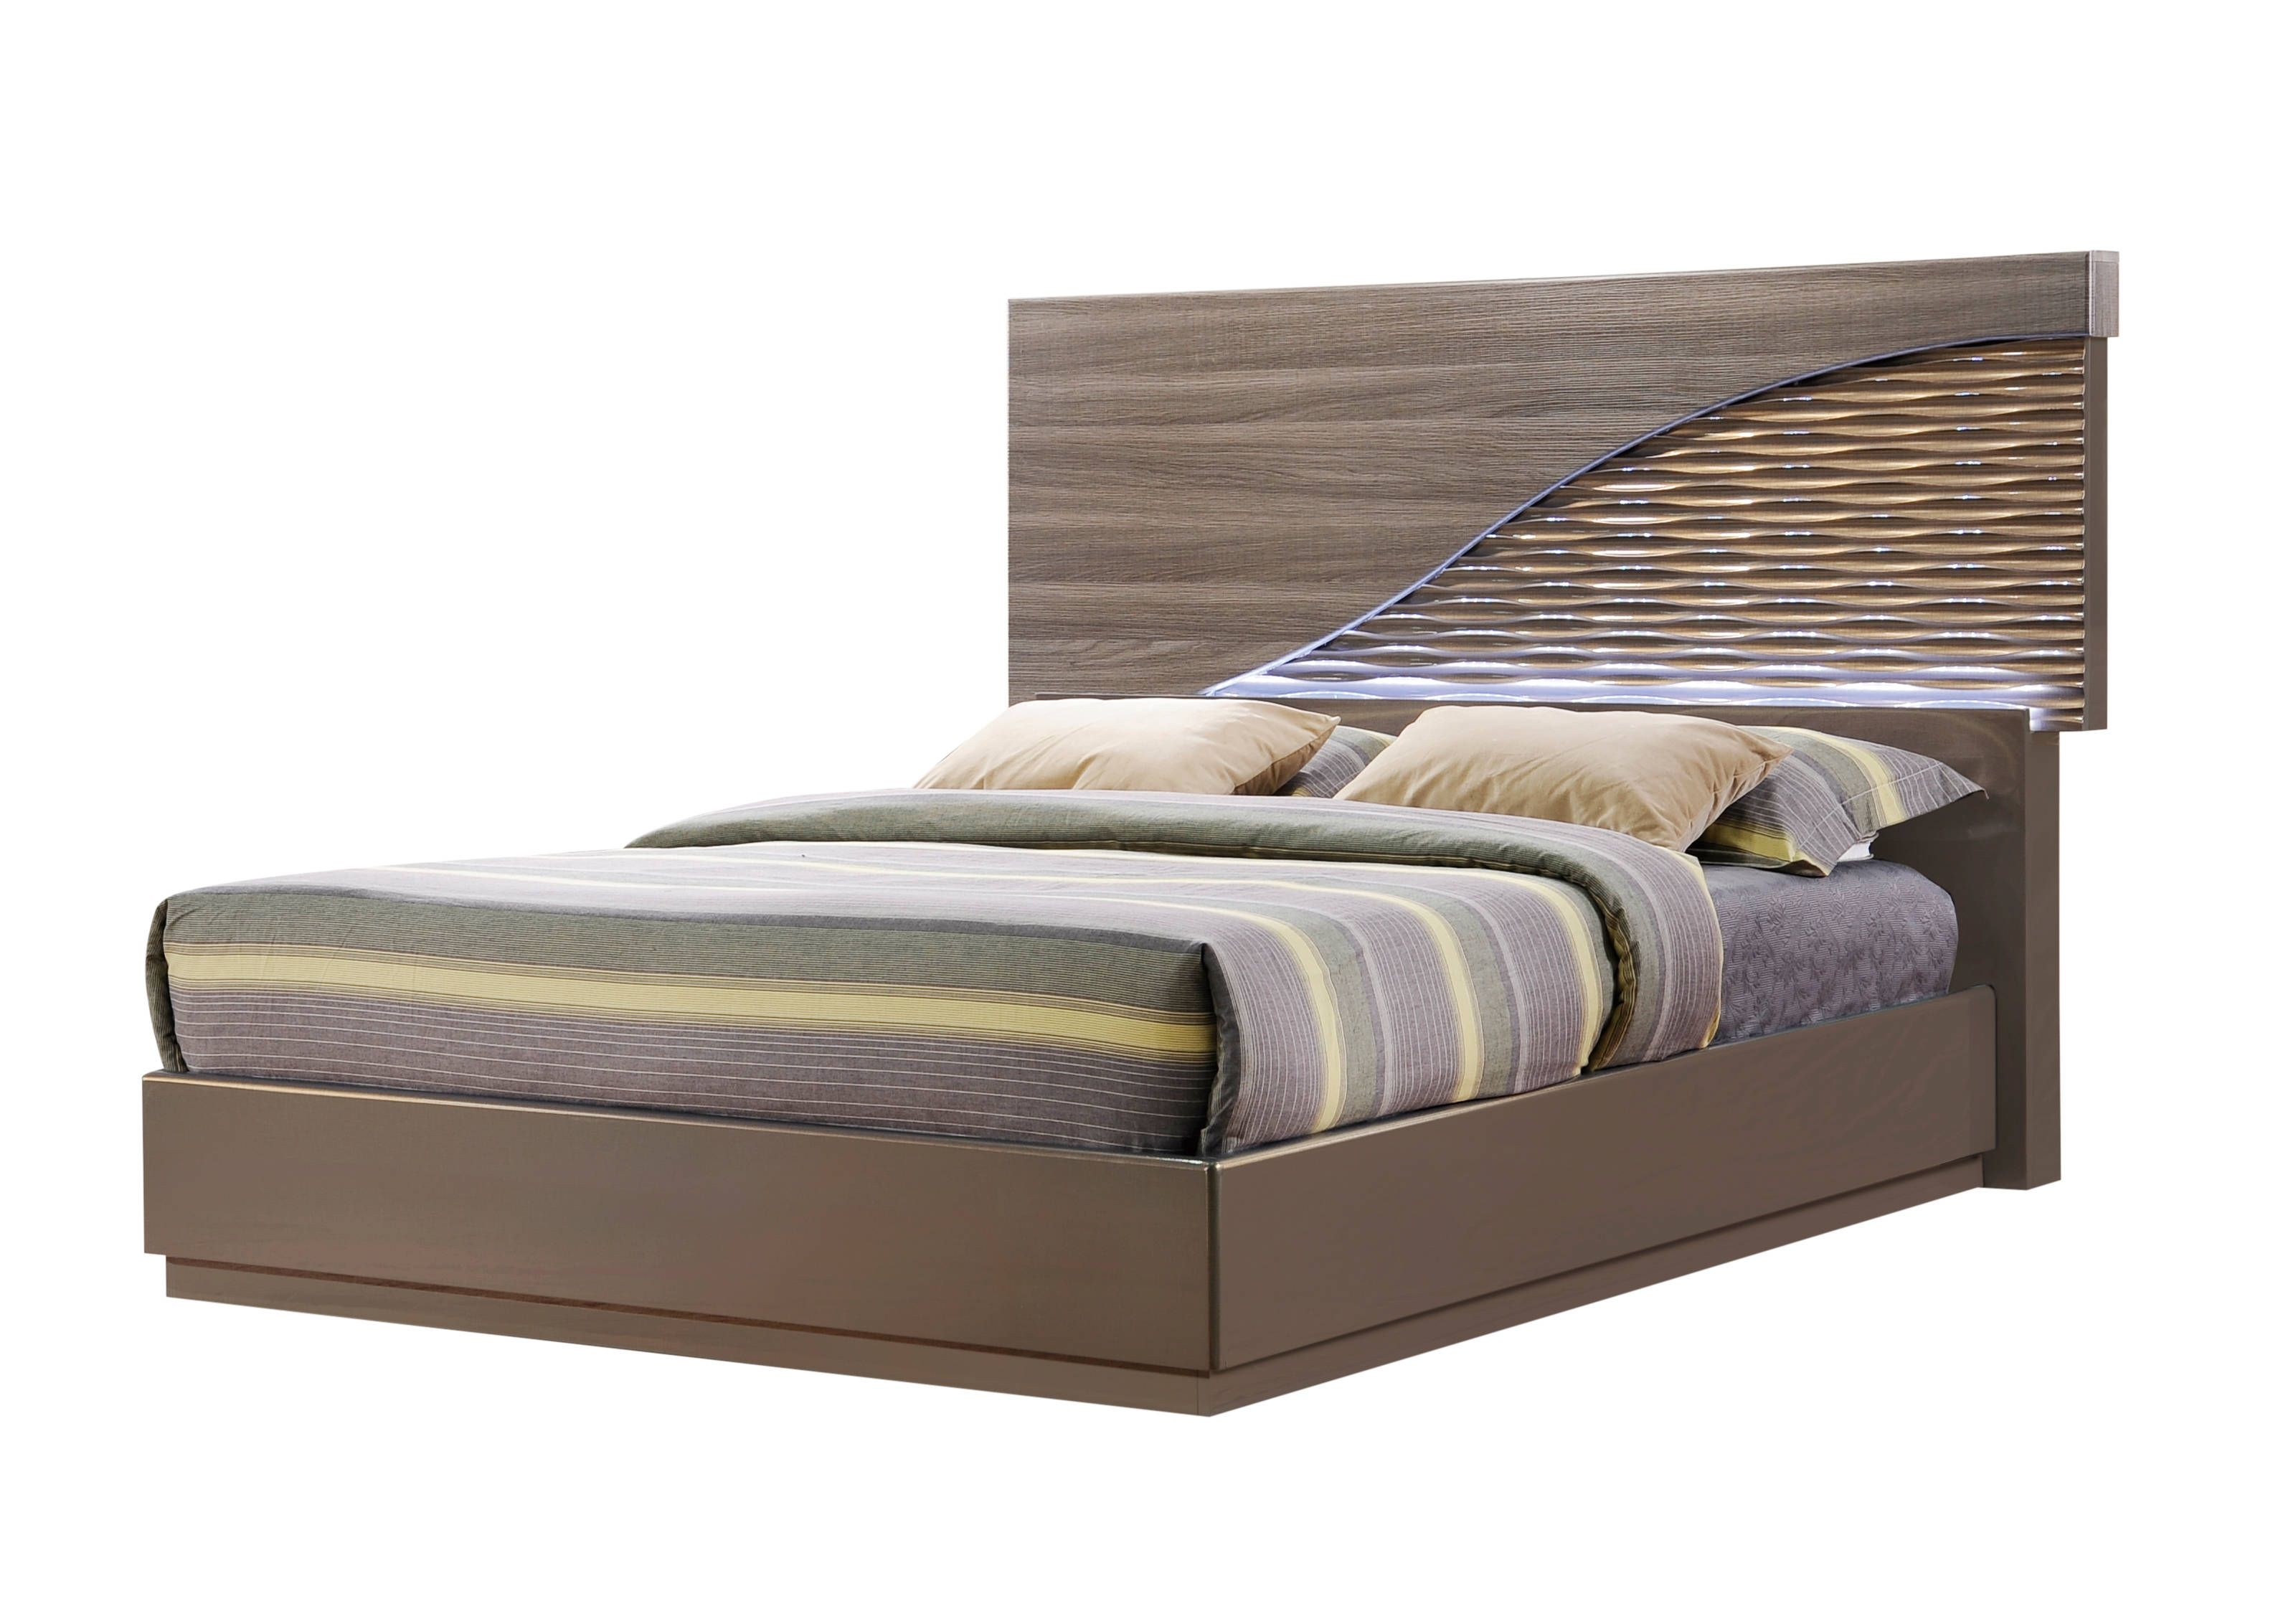 Global Furniture North Gold Line Queen Bed